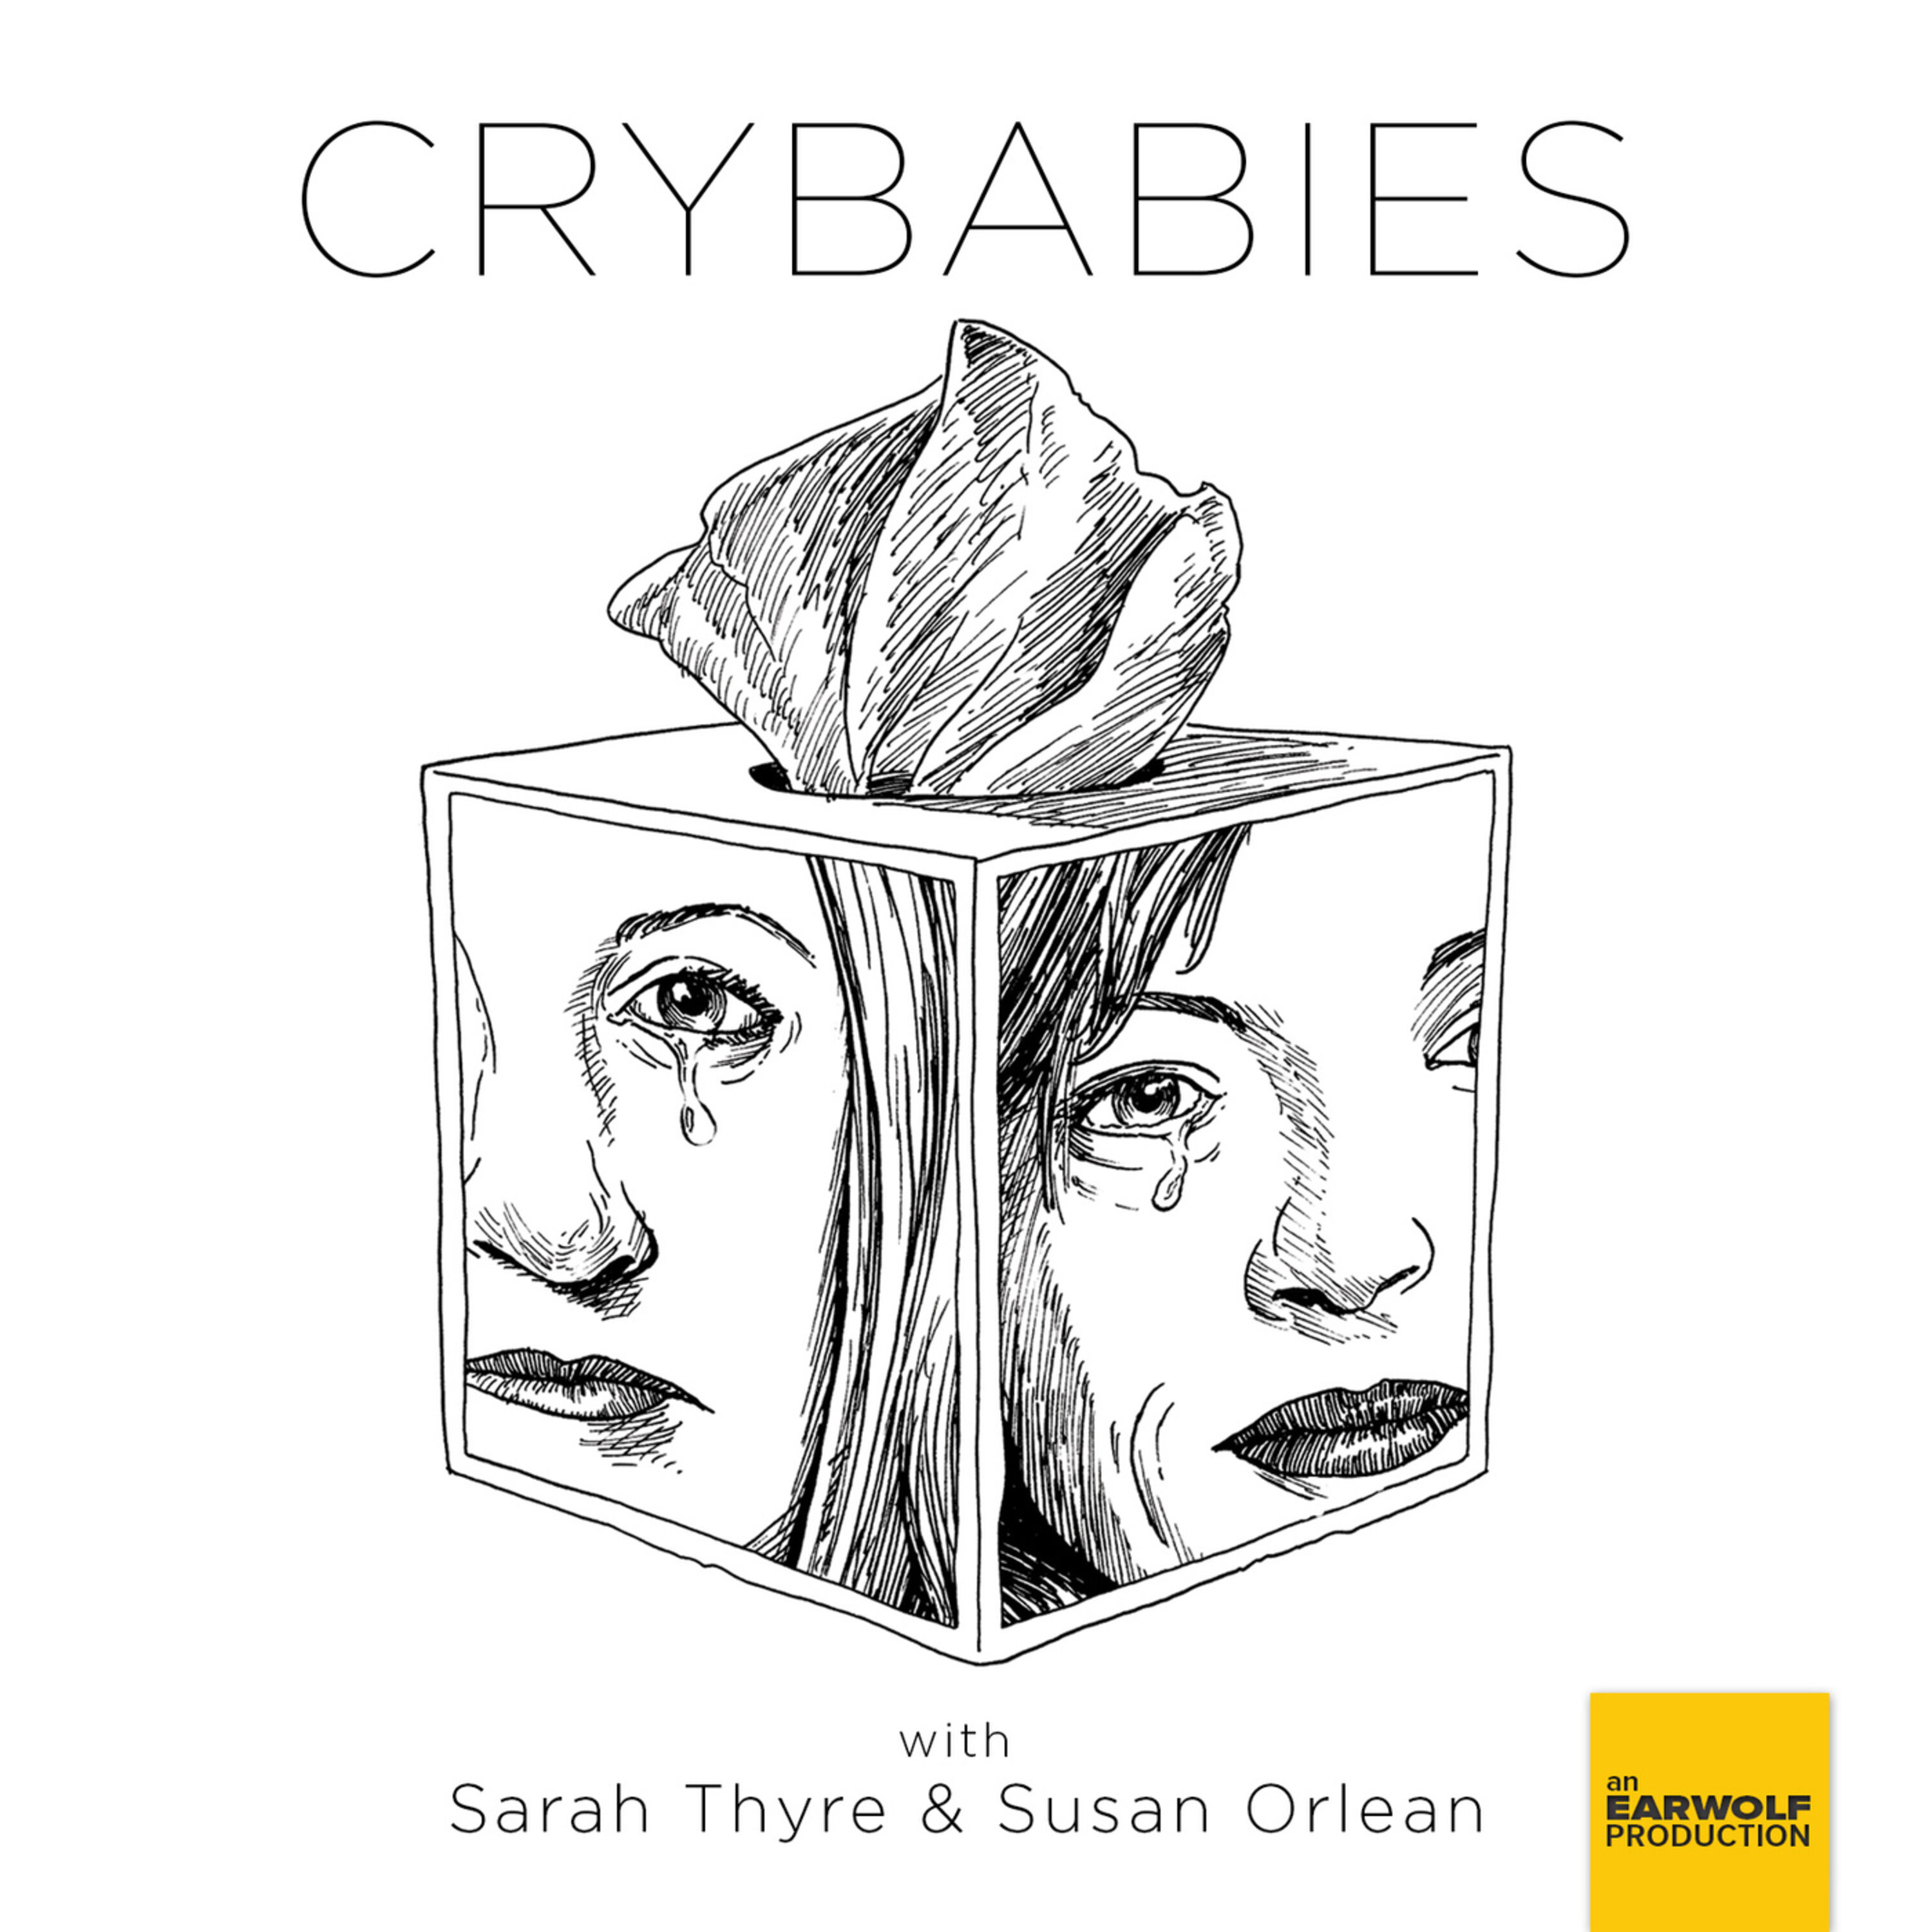 Crybabies podcast on Earwolf